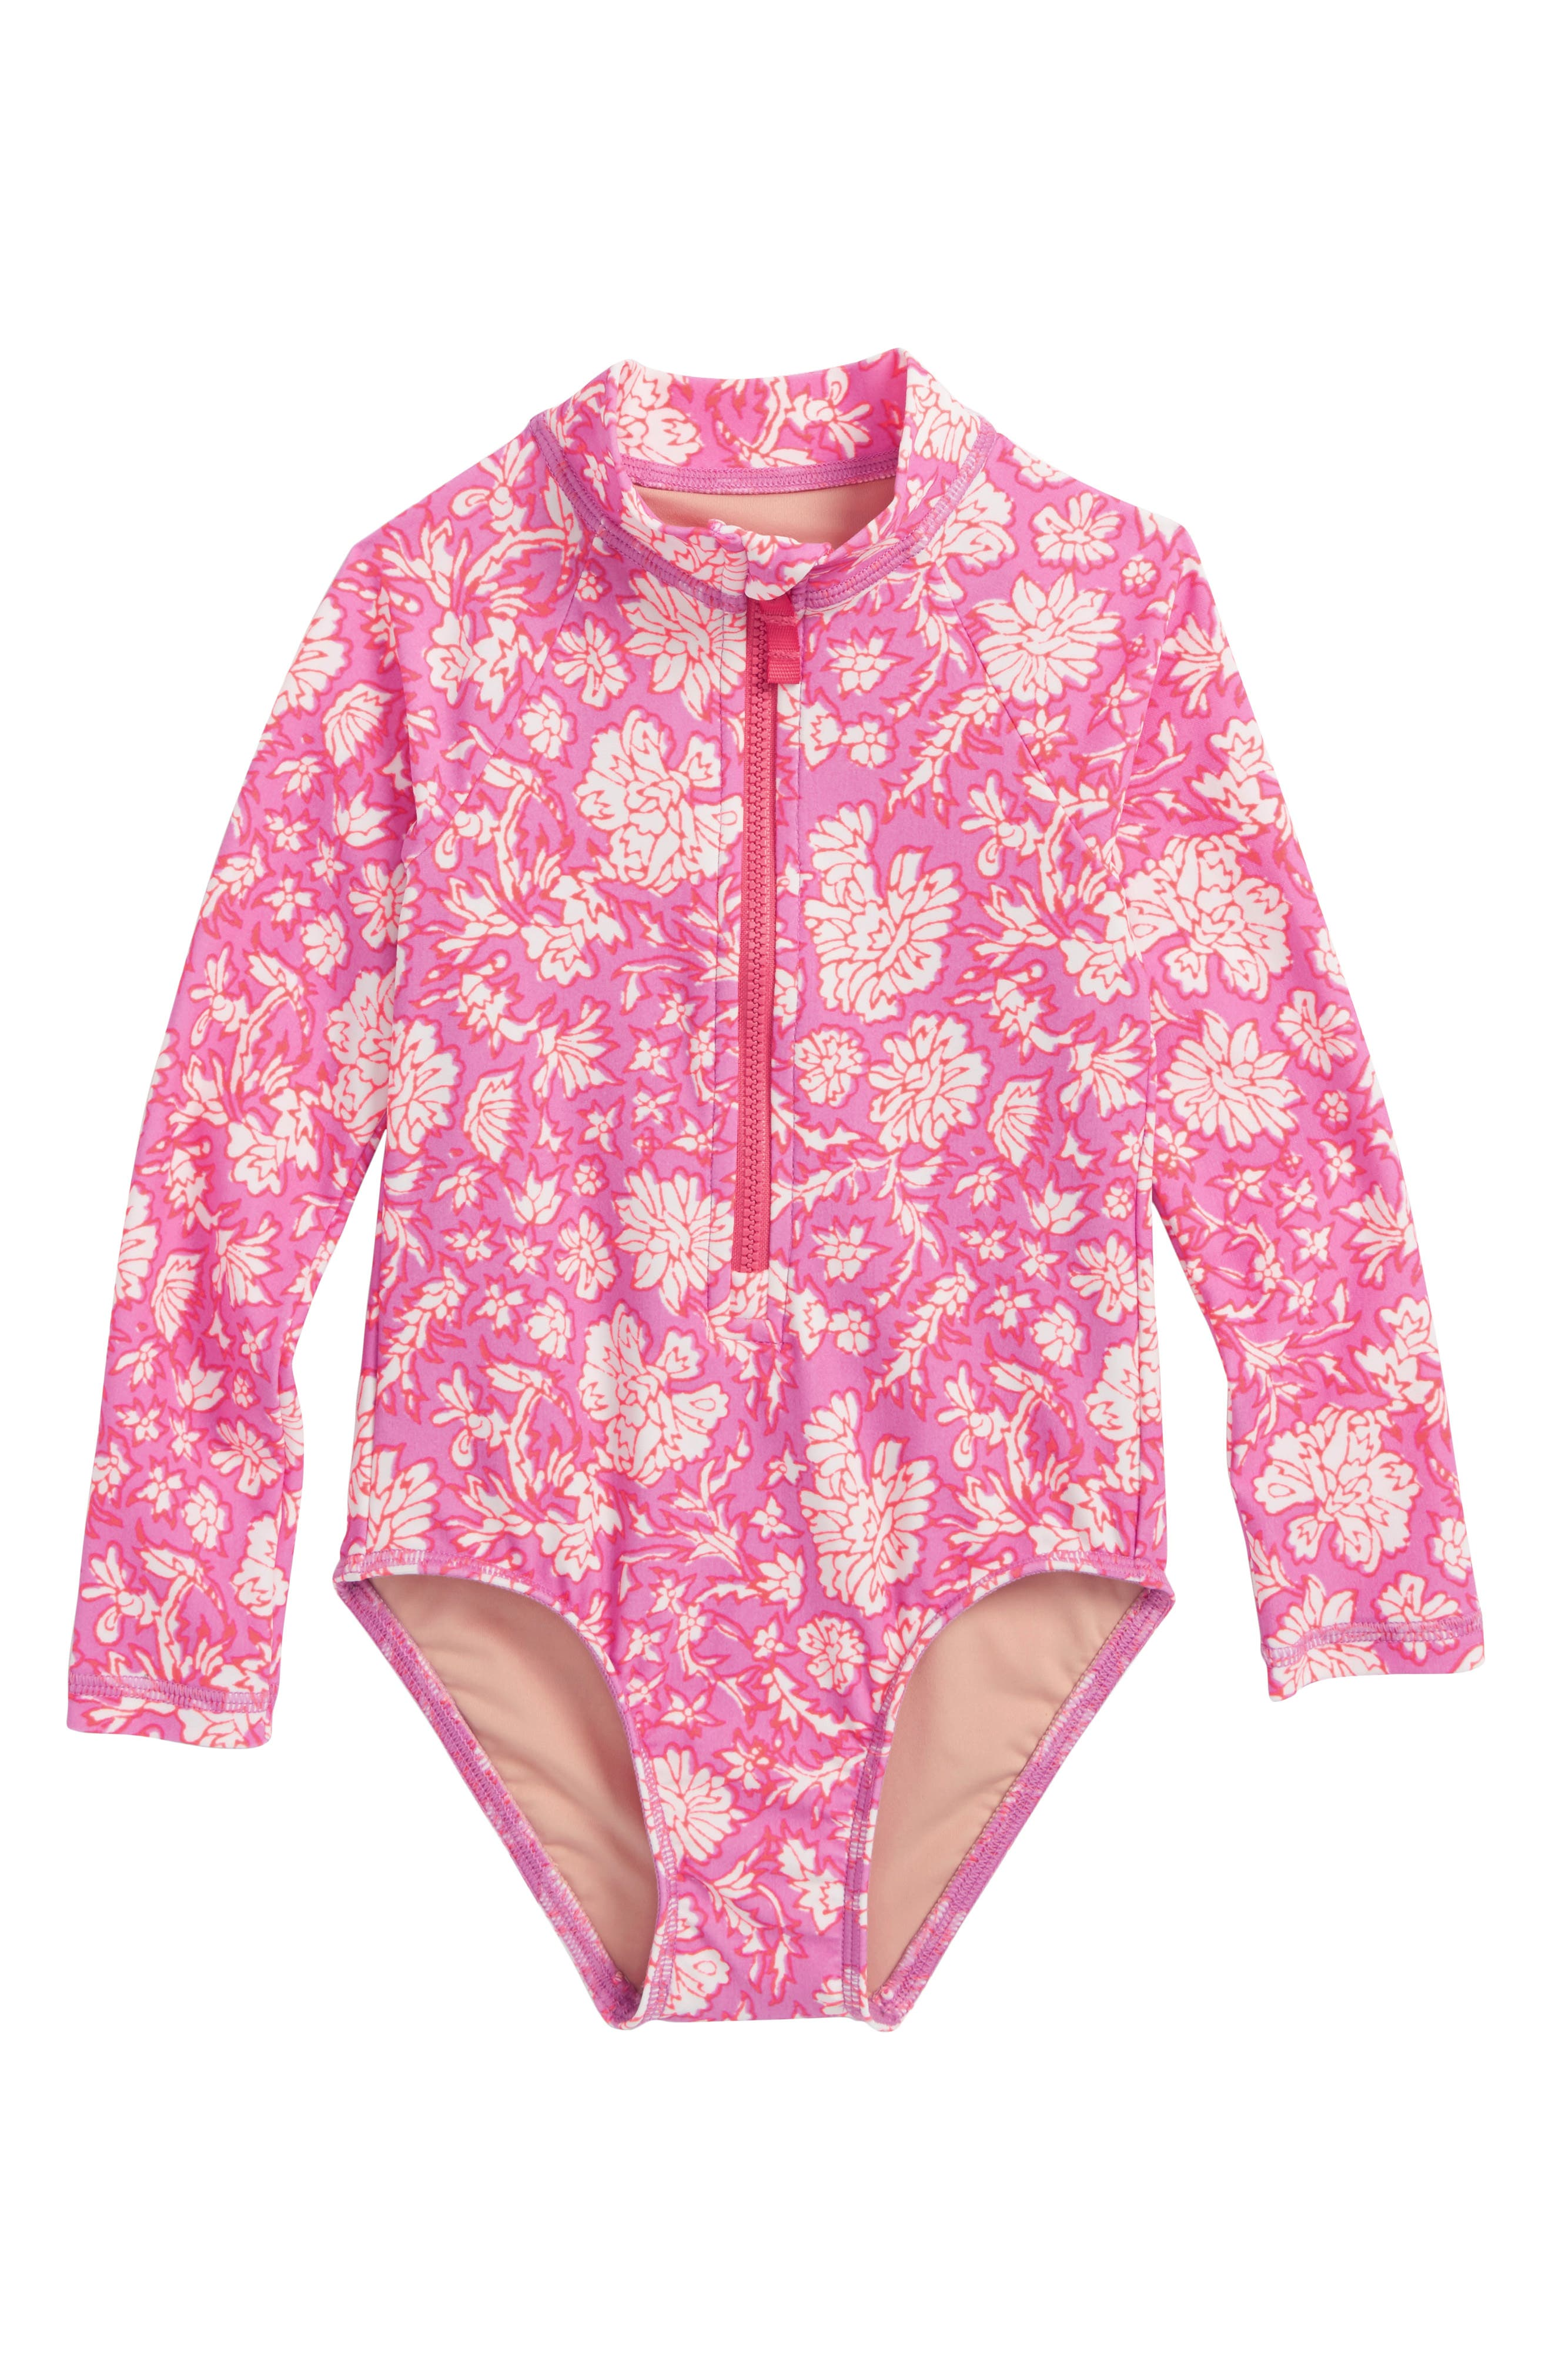 SZ Blockprints<sup>™</sup> Floral One-Piece Rashguard,                             Main thumbnail 1, color,                             900